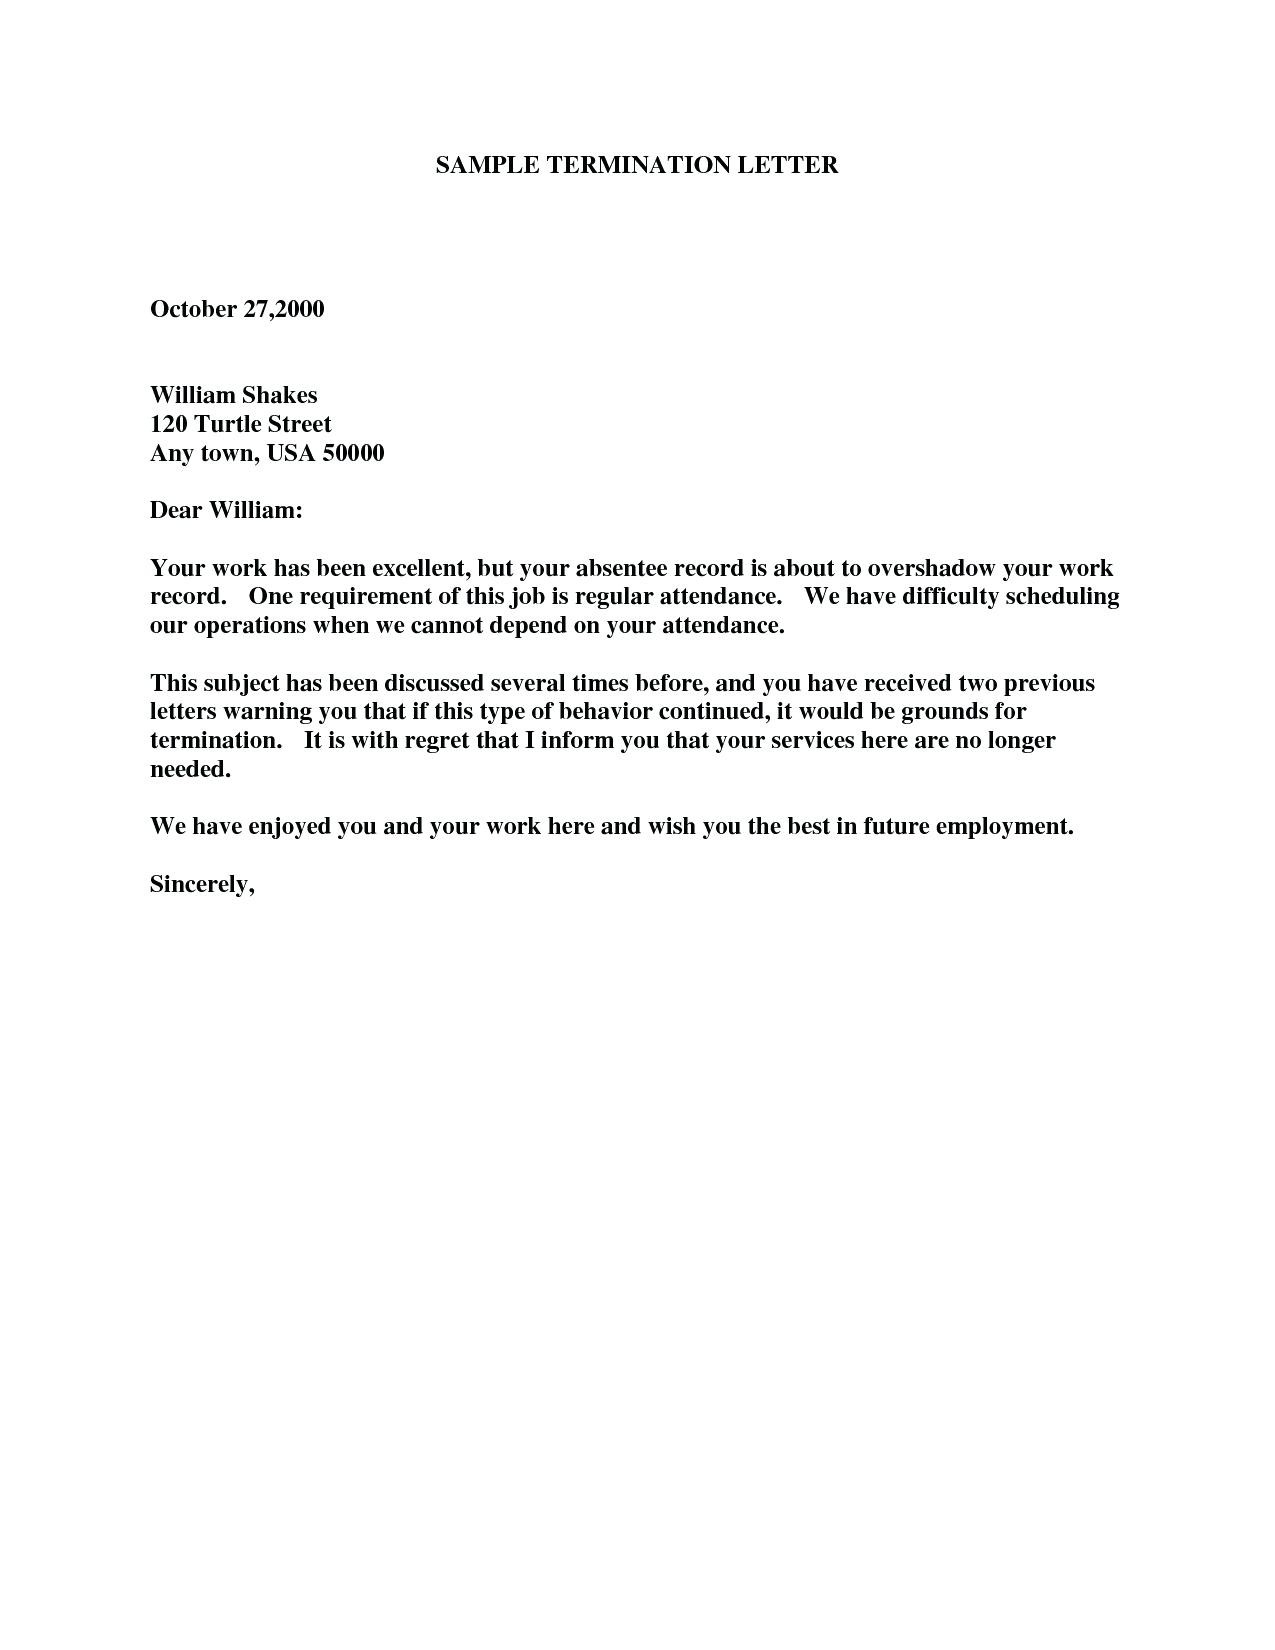 expulsion-appeal-letter-template-7 Sample Expulsion Letter Templates on employee termination, employment termination, professional cover, character reference, resume cover, business proposal, campaign fundraising, for kids, company introduction, university petition, donation request,